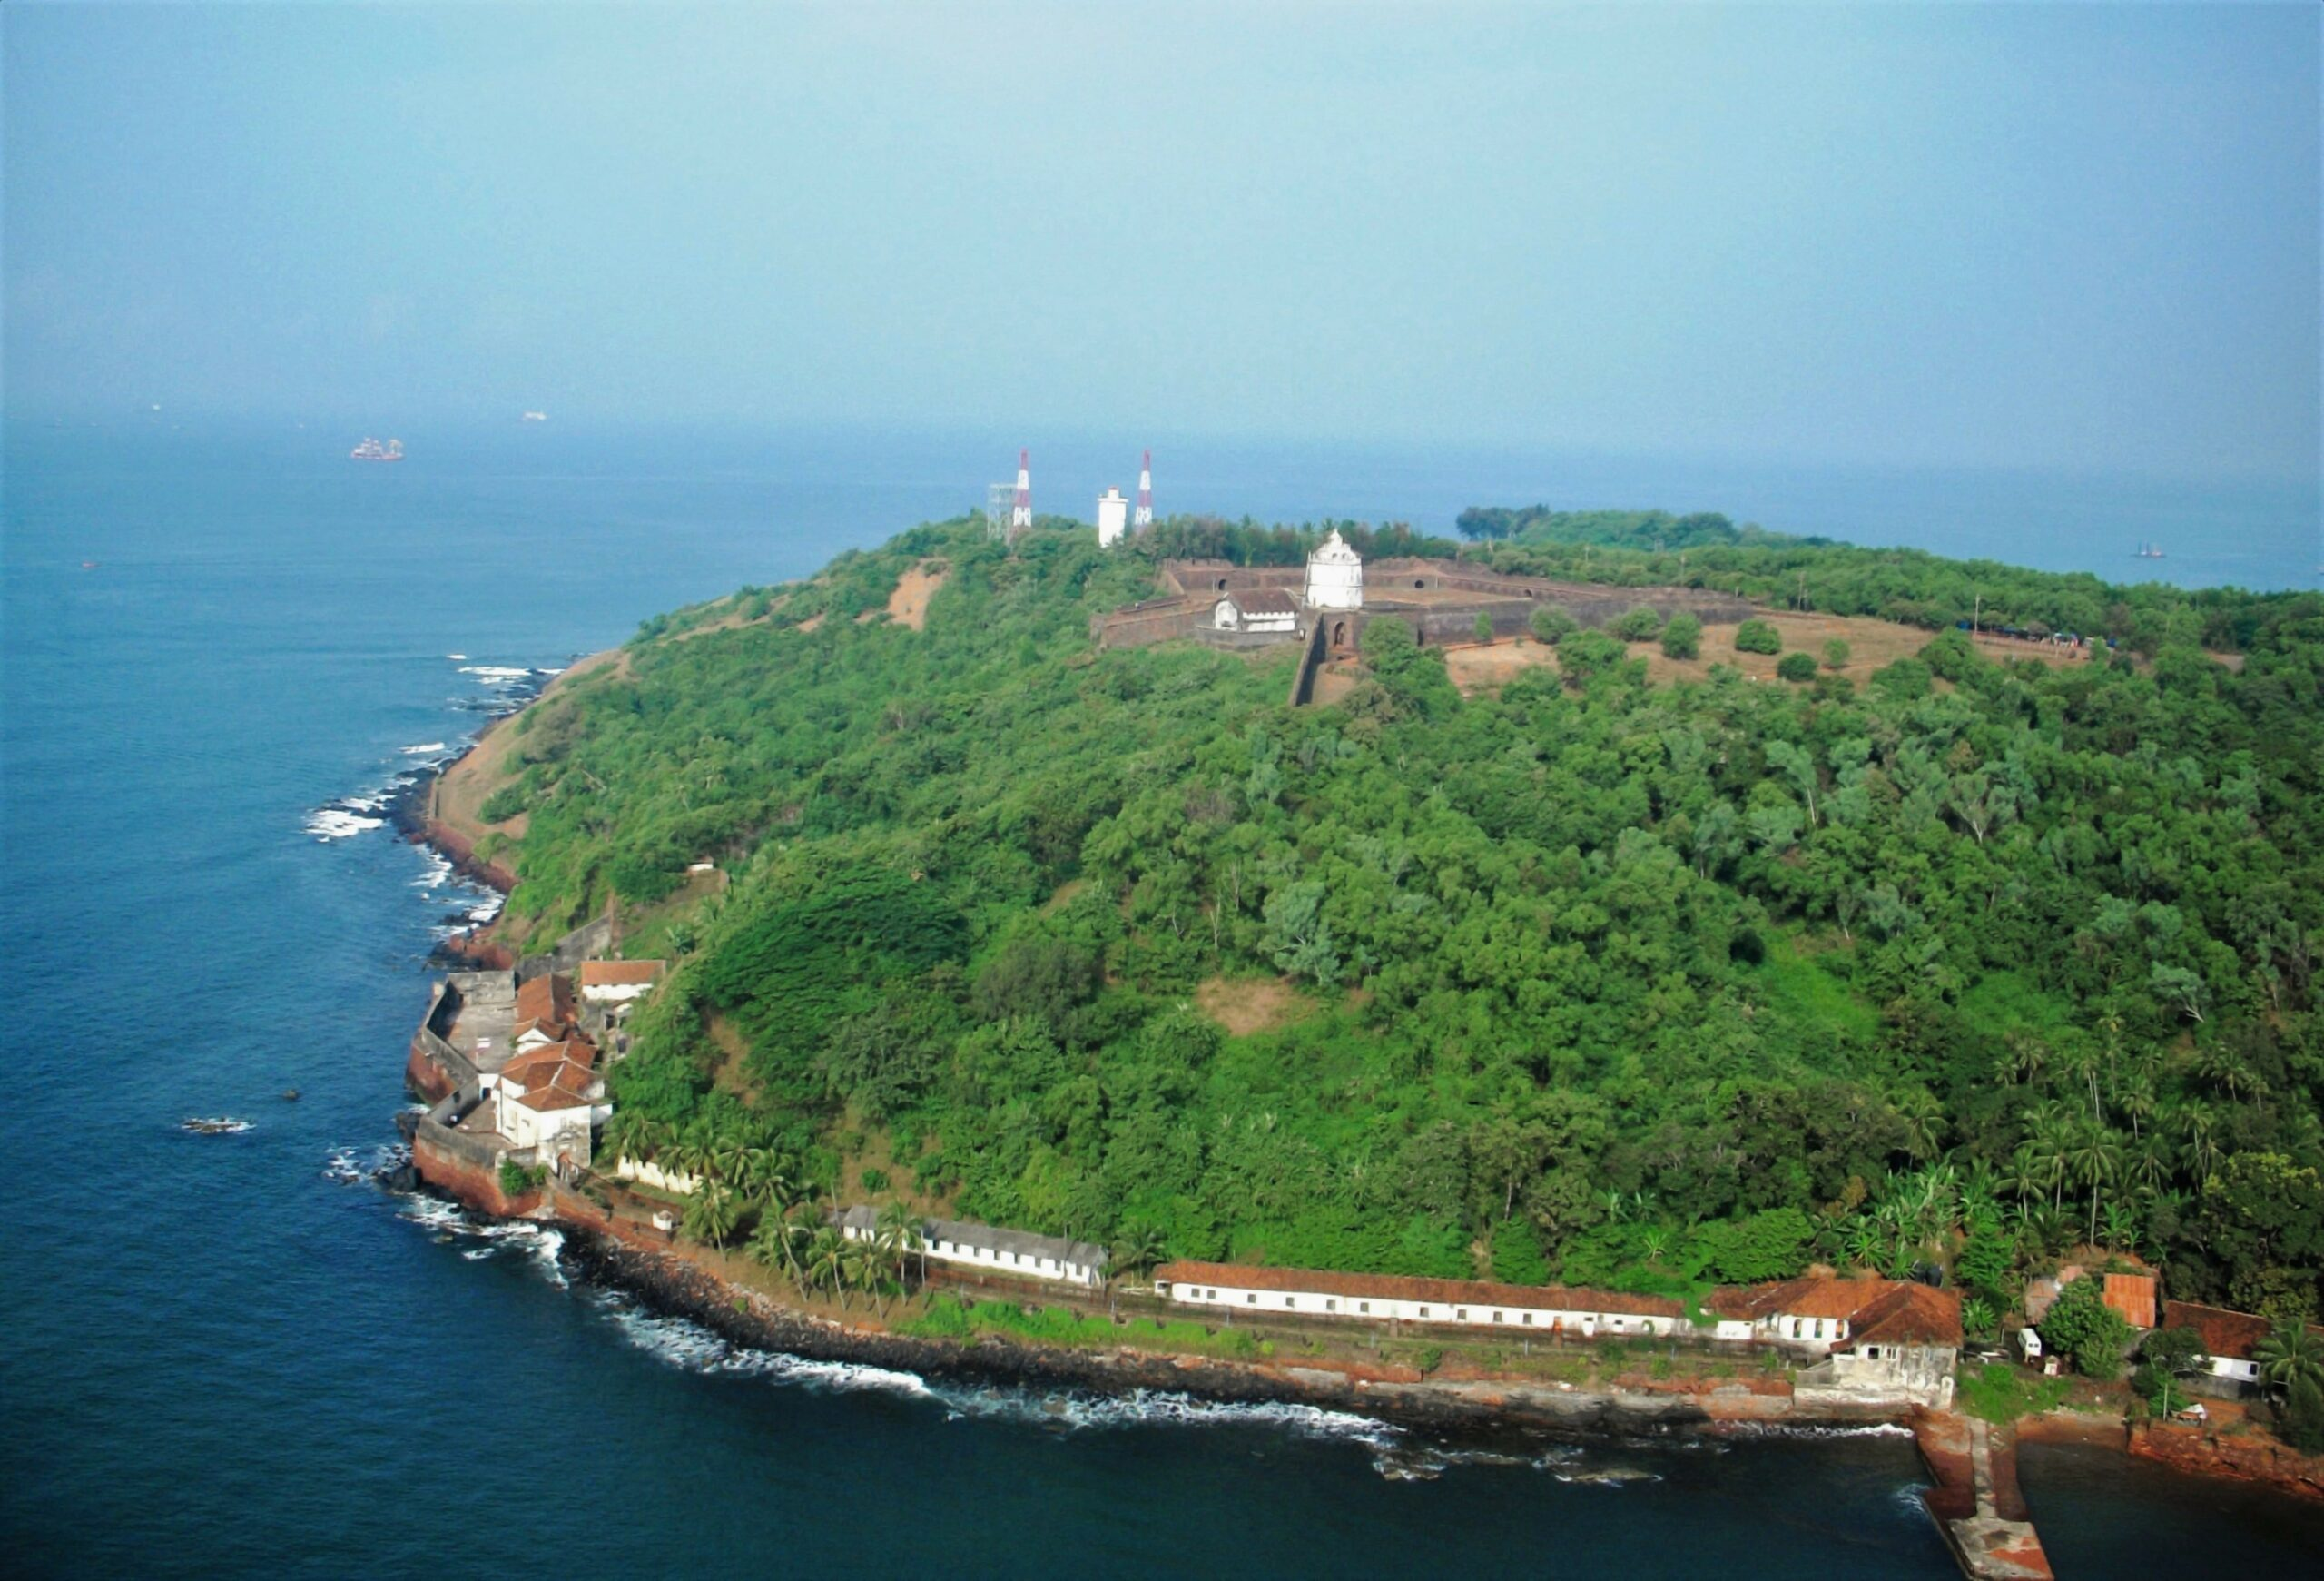 Aerial view of Fort Aguada | PC - Wikimedia Commons